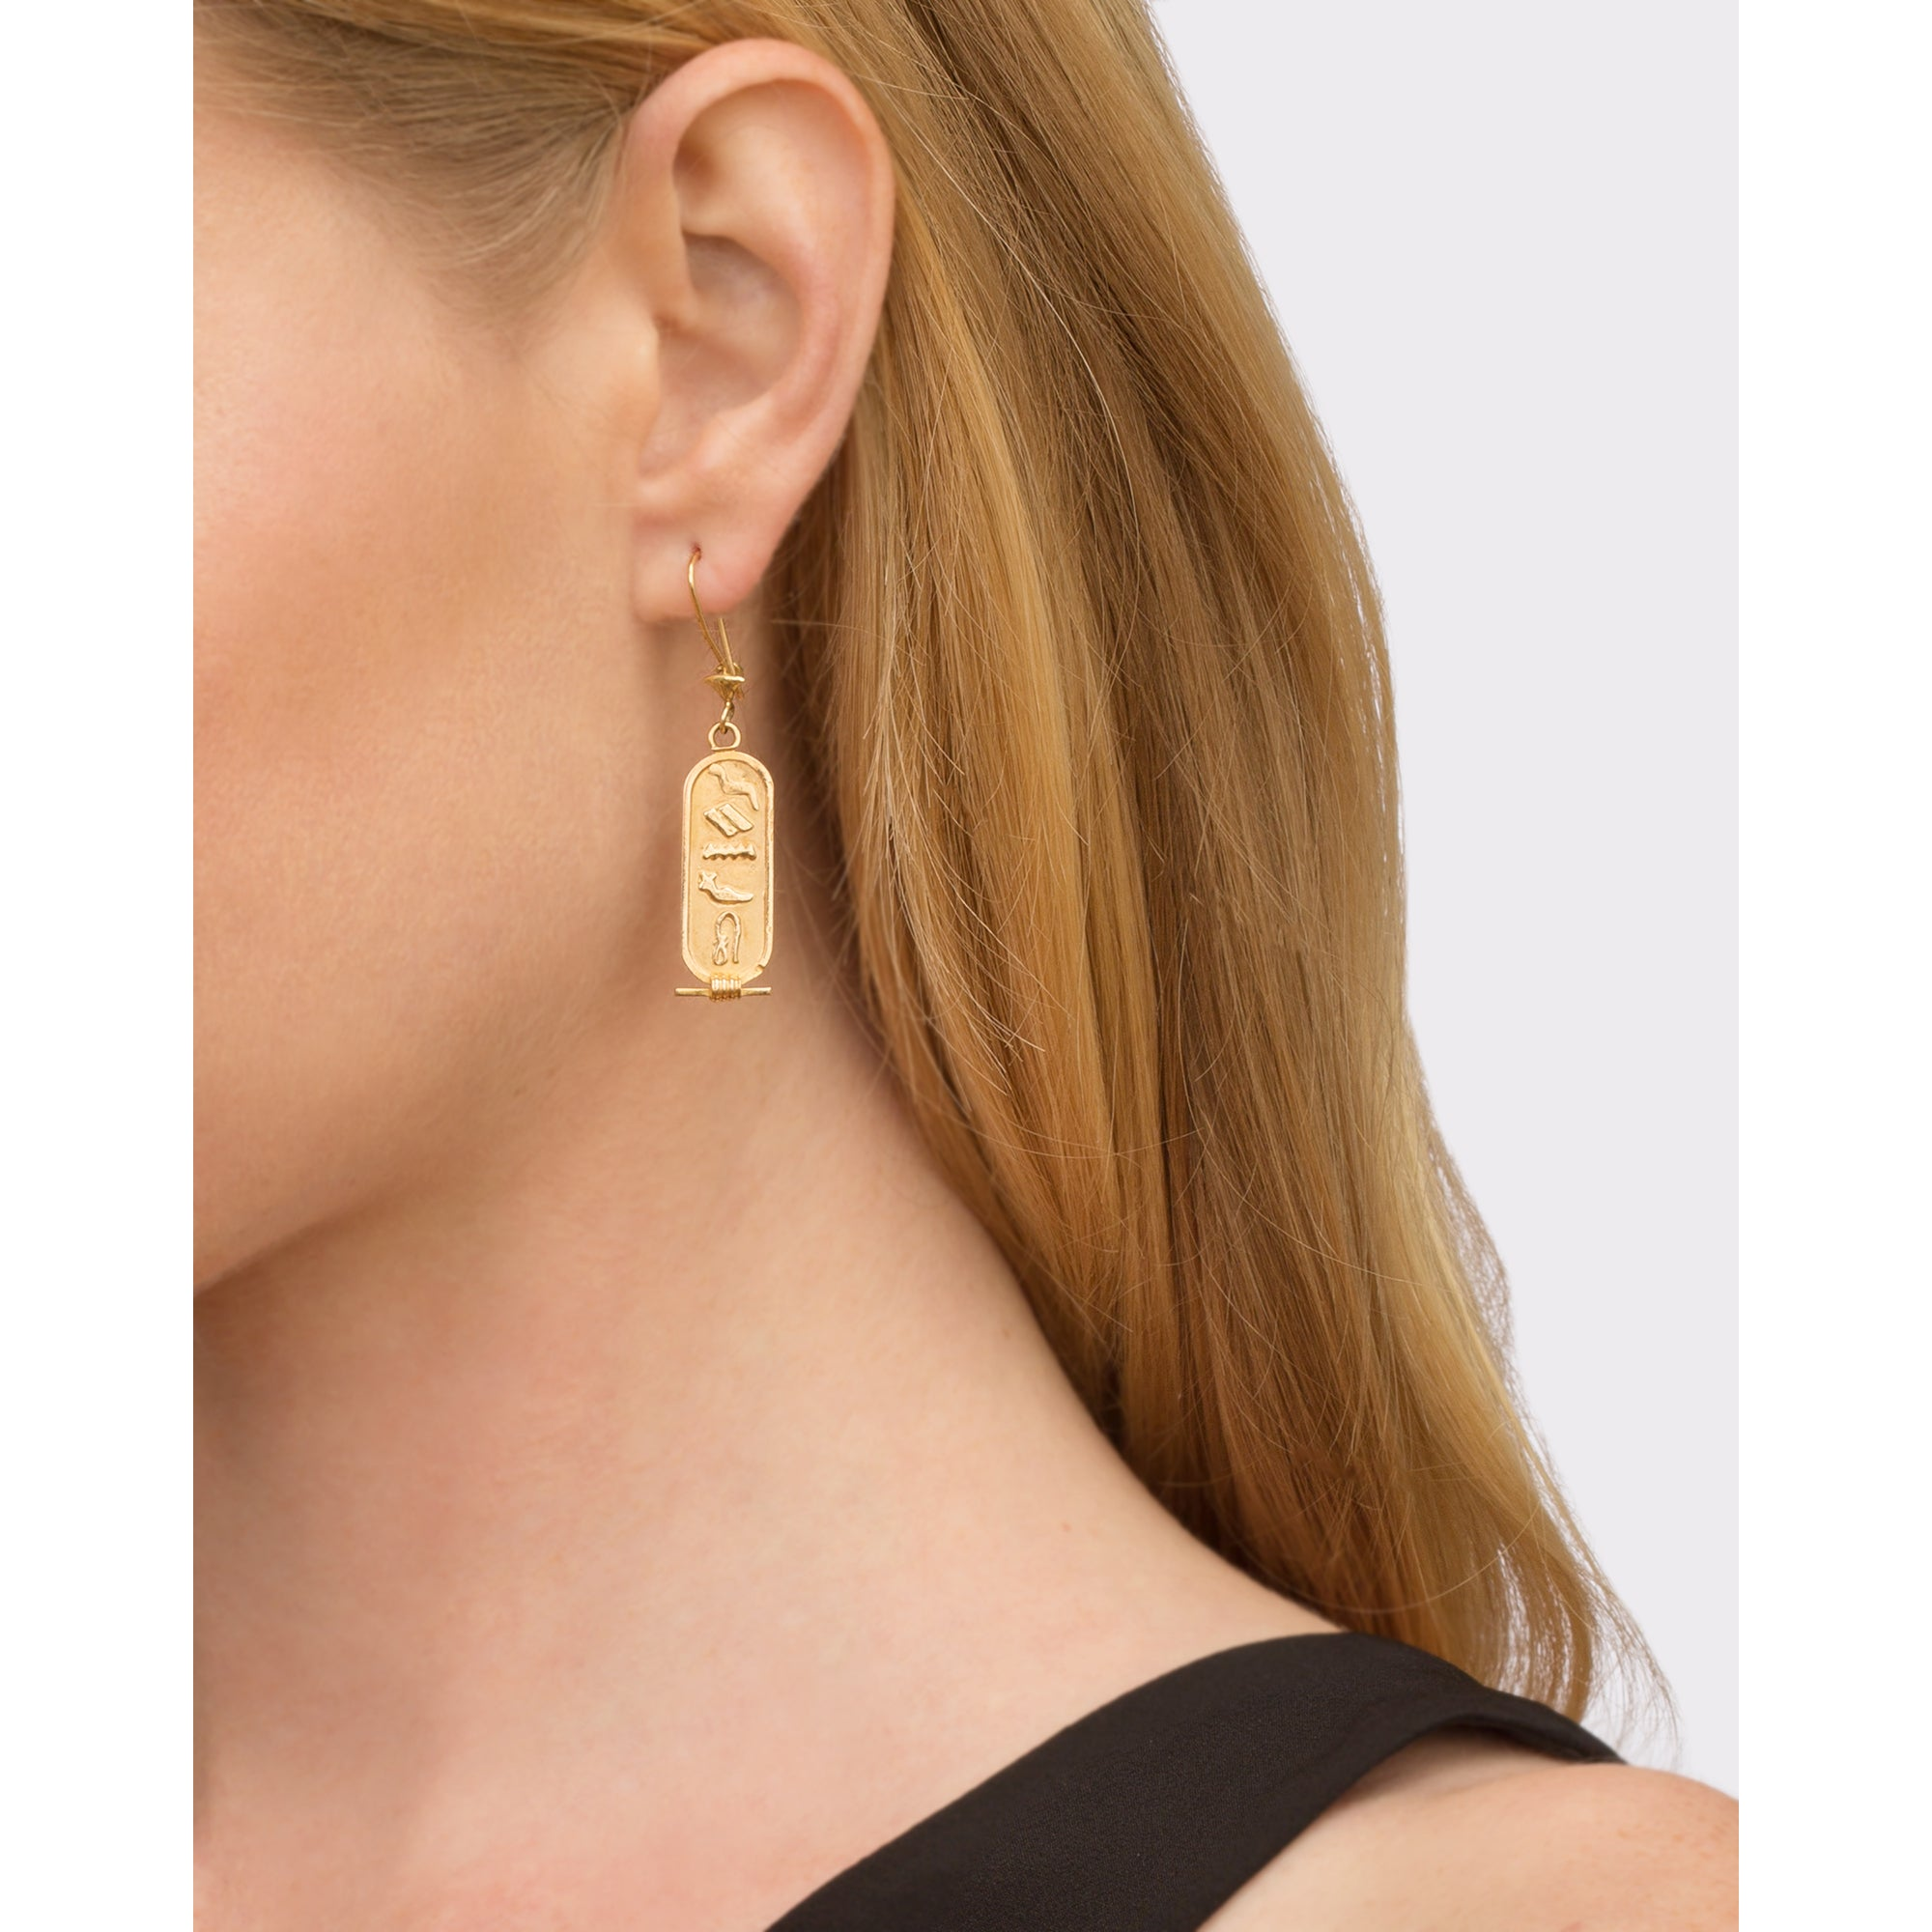 Egyptian Cartouche Earrings from Broken English Jewelry